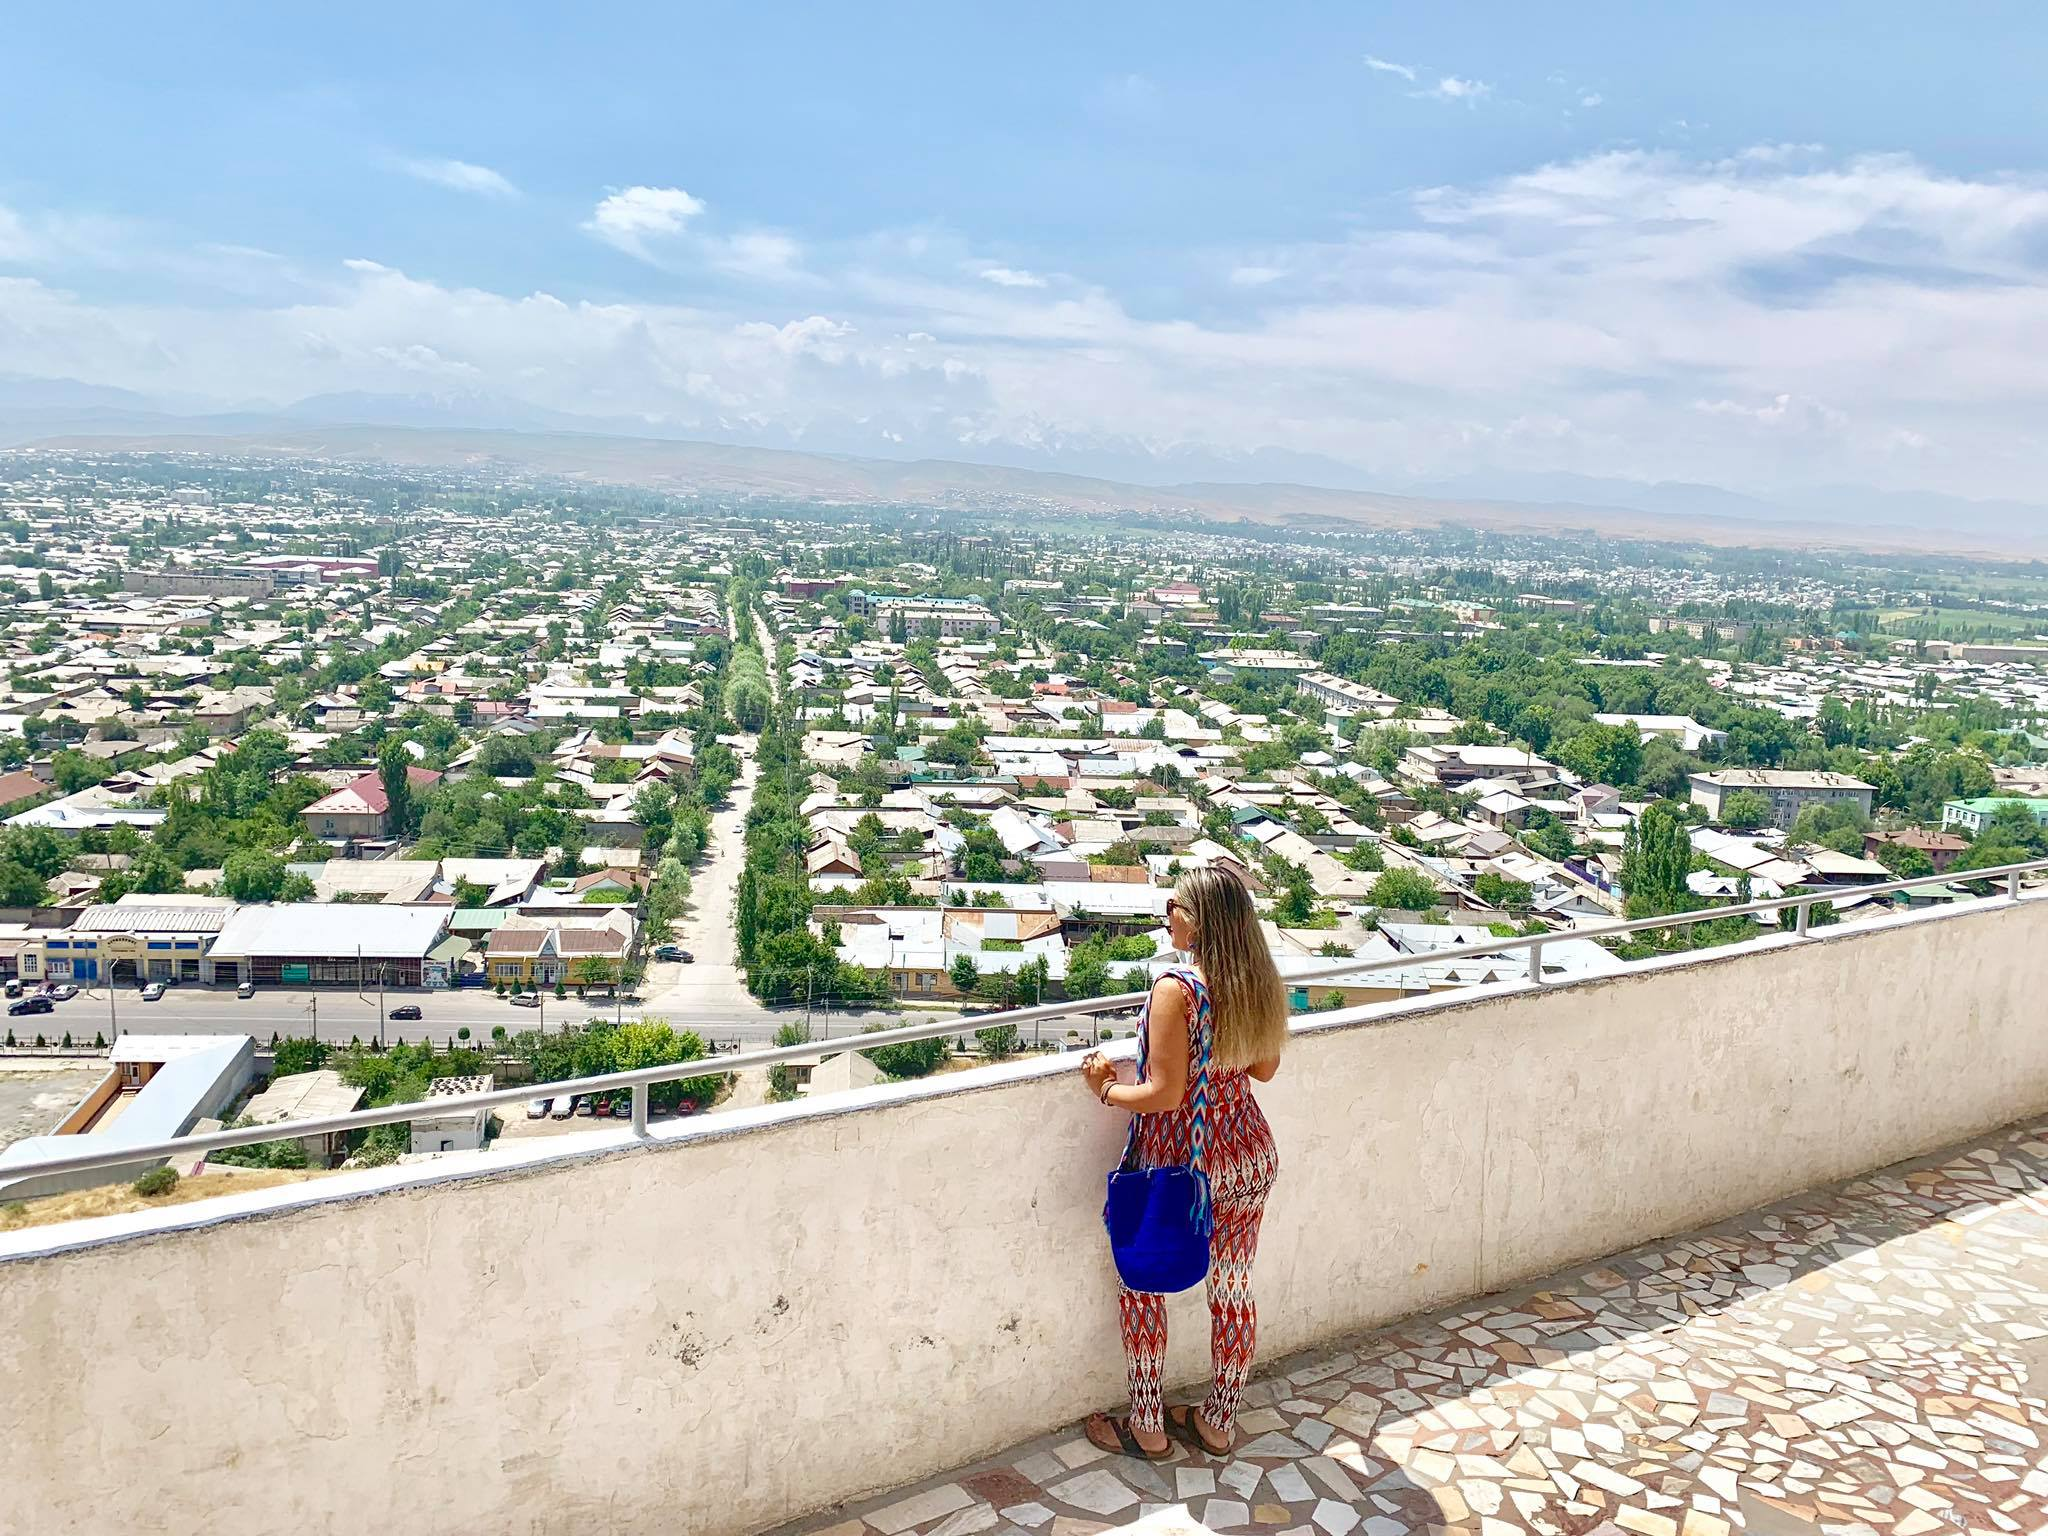 Kach Solo Travels in 2019 Exploring KYRGYZSTAN with Destination Pamir1.jpg